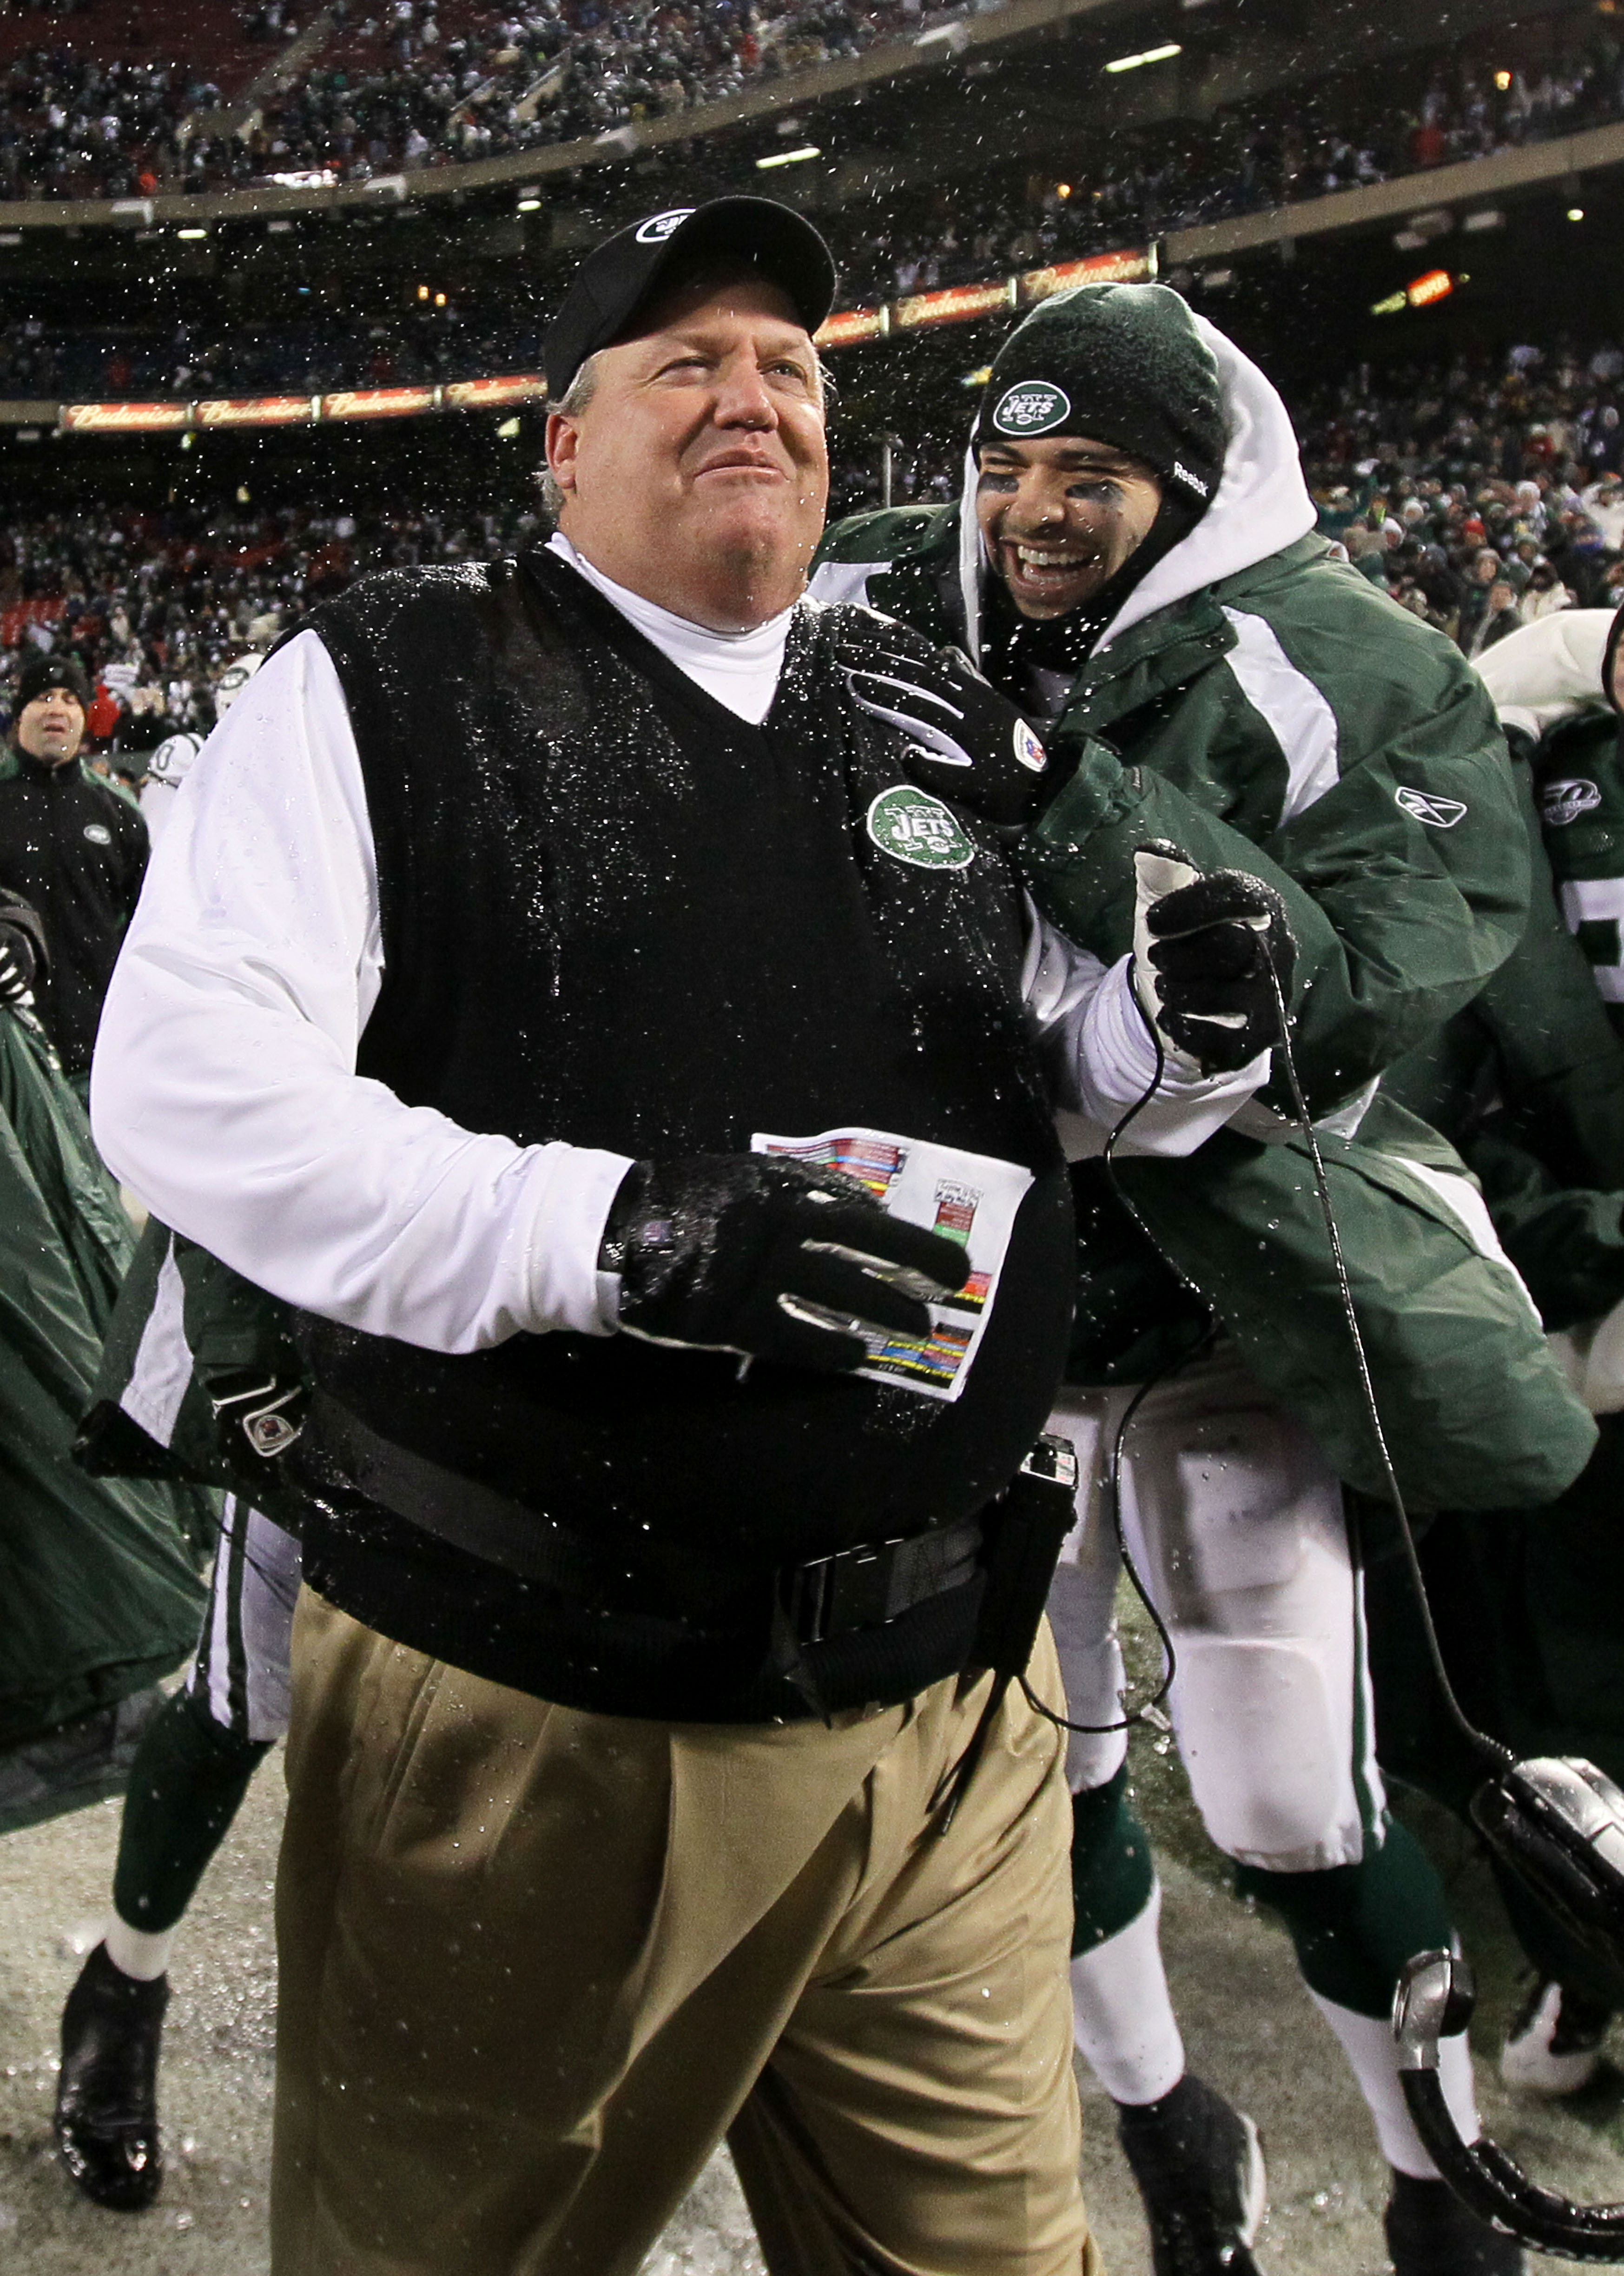 EAST RUTHERFORD, NJ - JANUARY 03:  Quarterback  Mark Sanchez #6 and head coach Rex Ryan  of the New York Jets celebrate their 37-0 victory over the Cincinnati Bengals at Giants Stadium on January 3, 2010 in East Rutherford, New Jersey.  This game was the